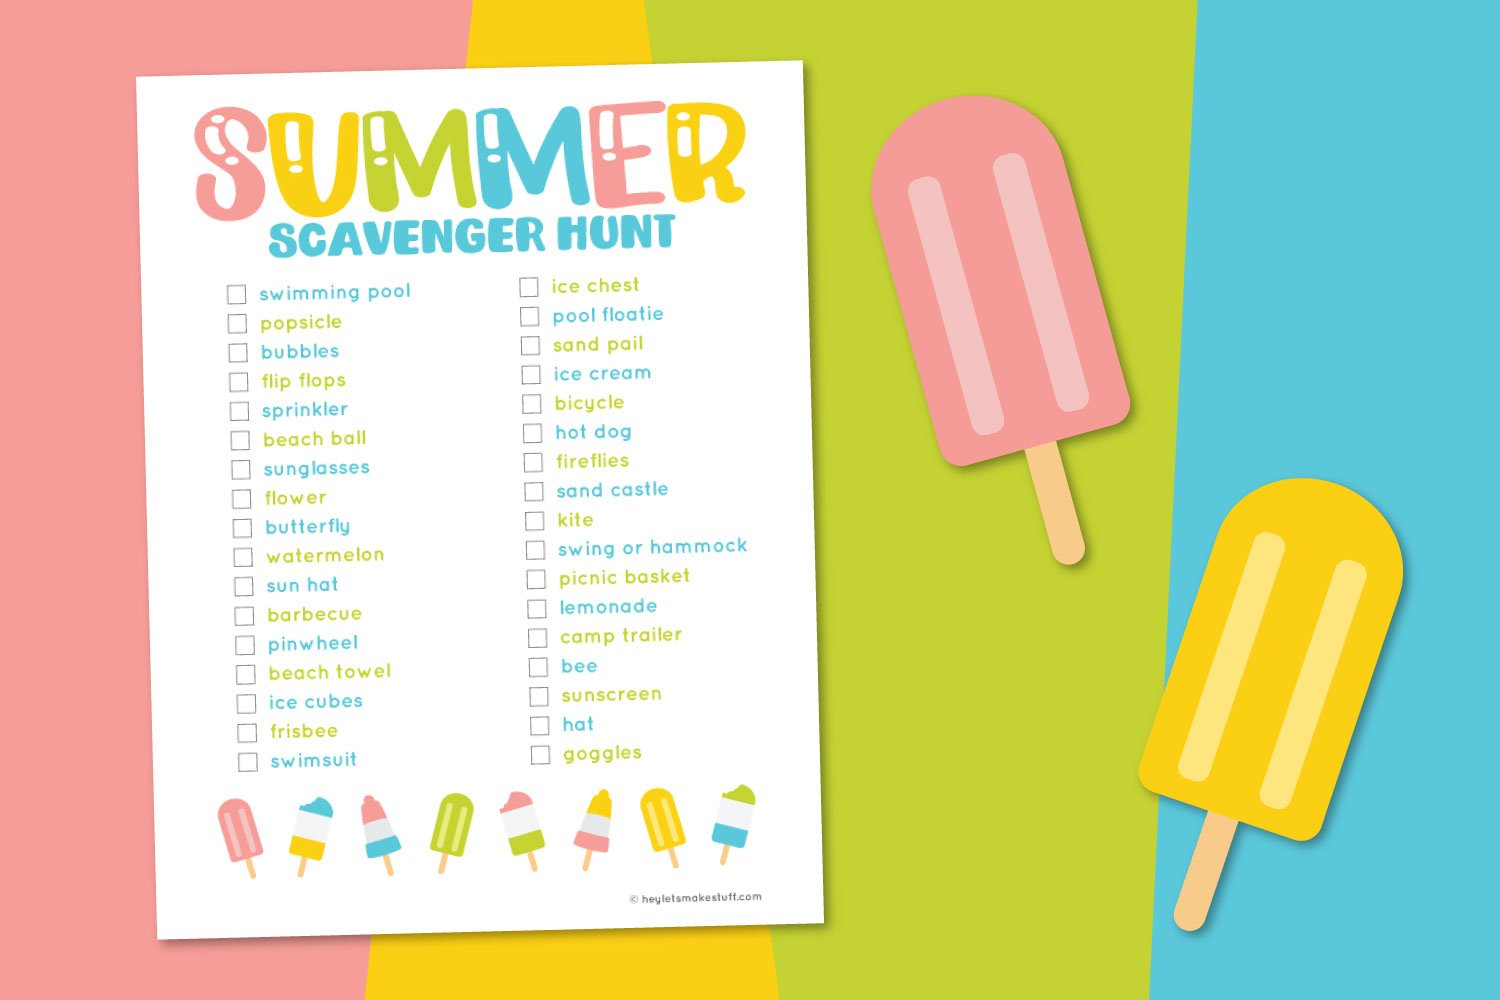 Summer scavenger hunt on a rainbow background